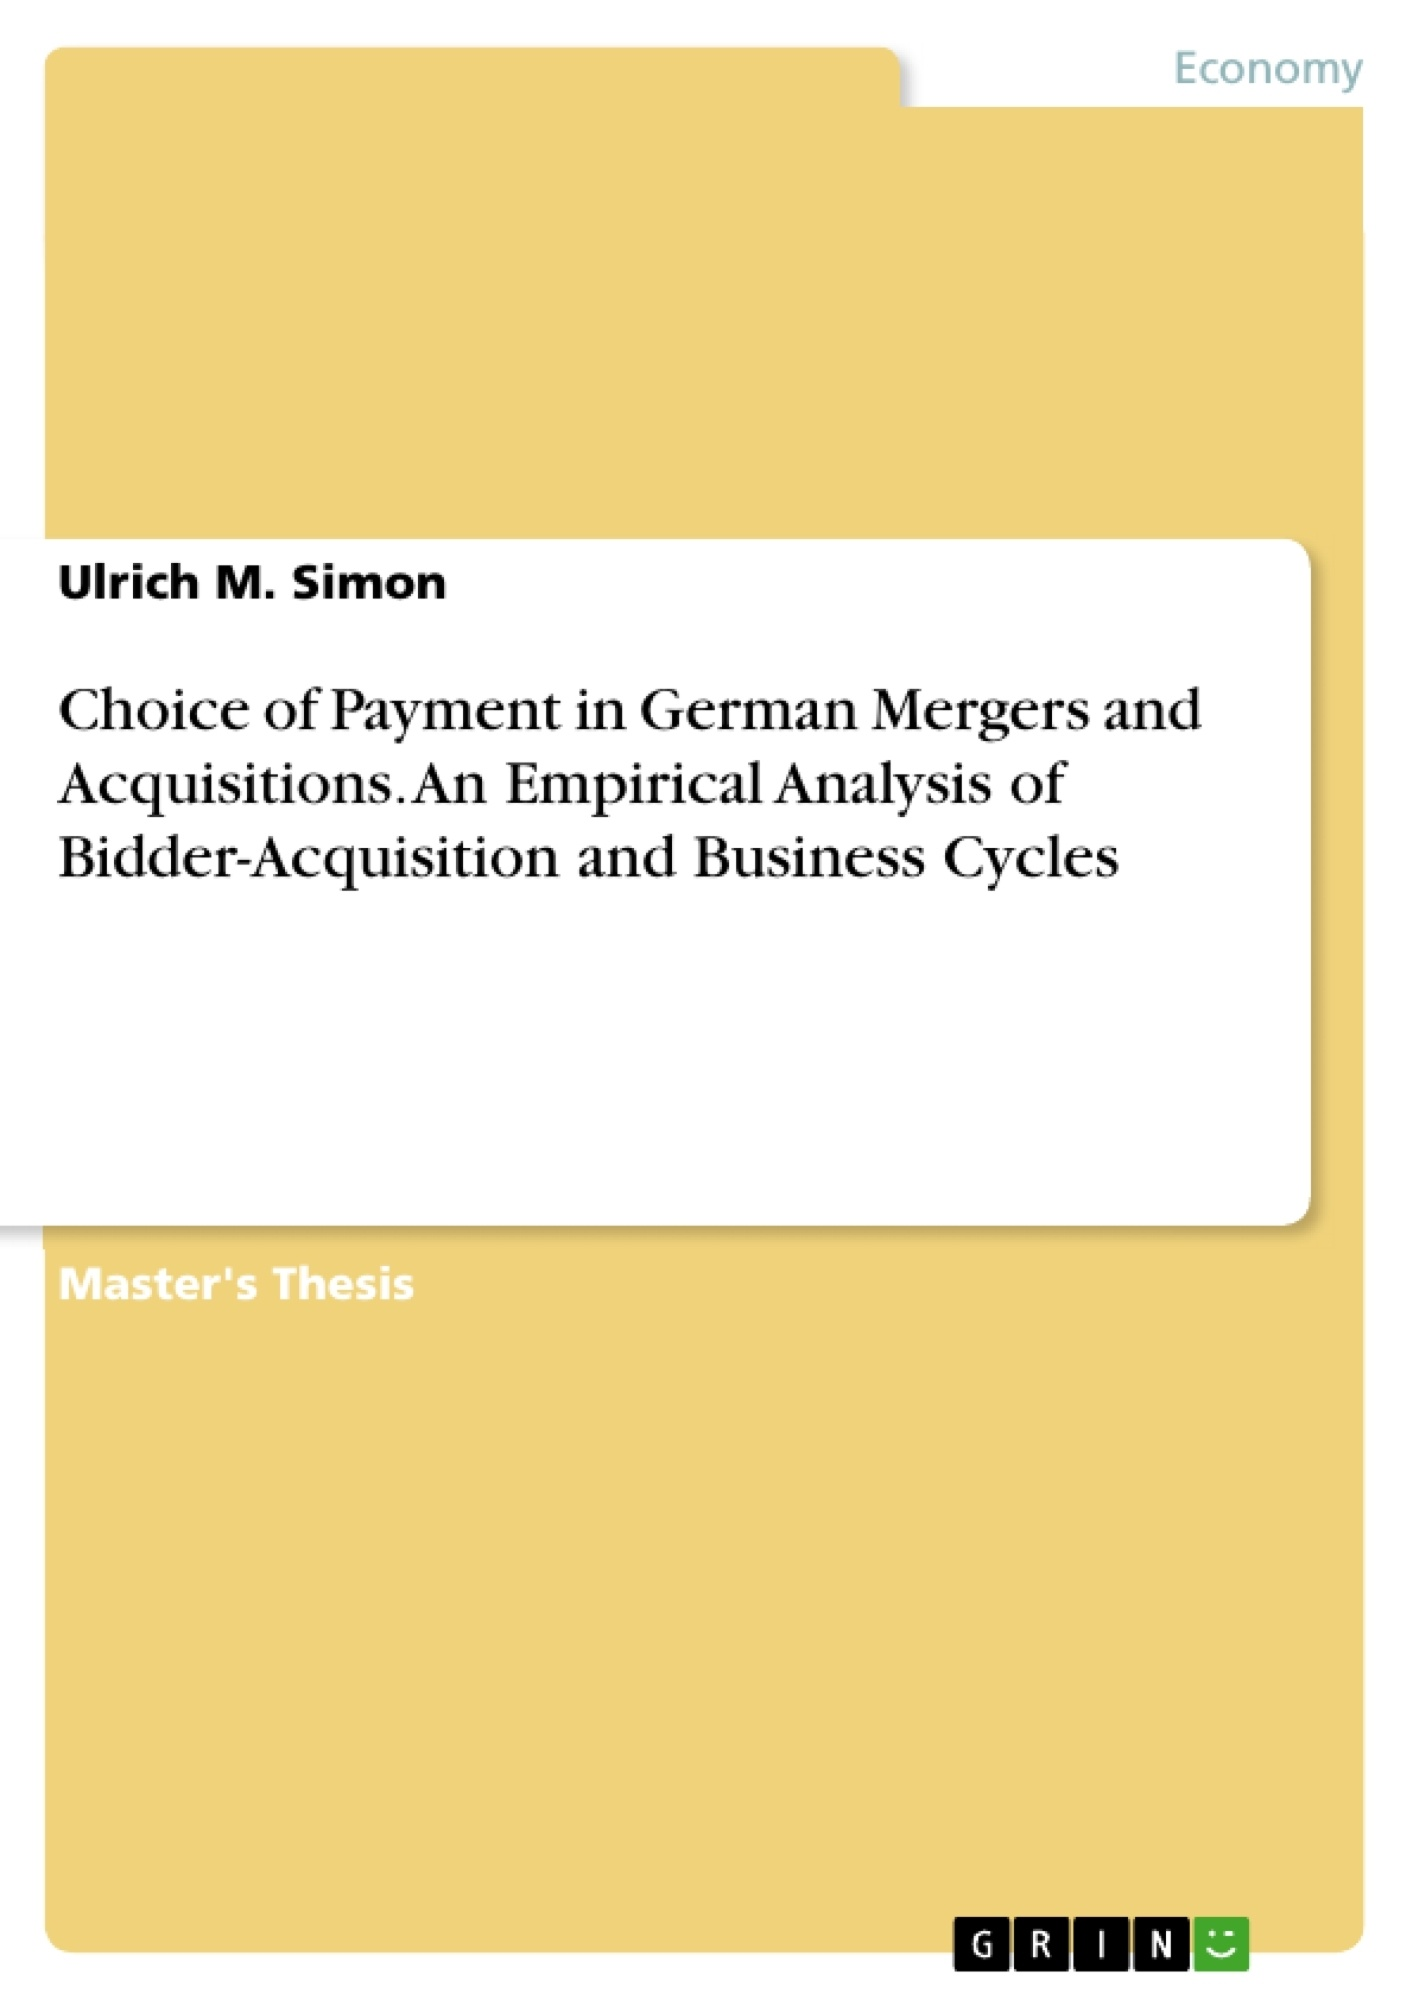 Title: Choice of Payment in German Mergers and Acquisitions. An Empirical Analysis of Bidder-Acquisition and Business Cycles